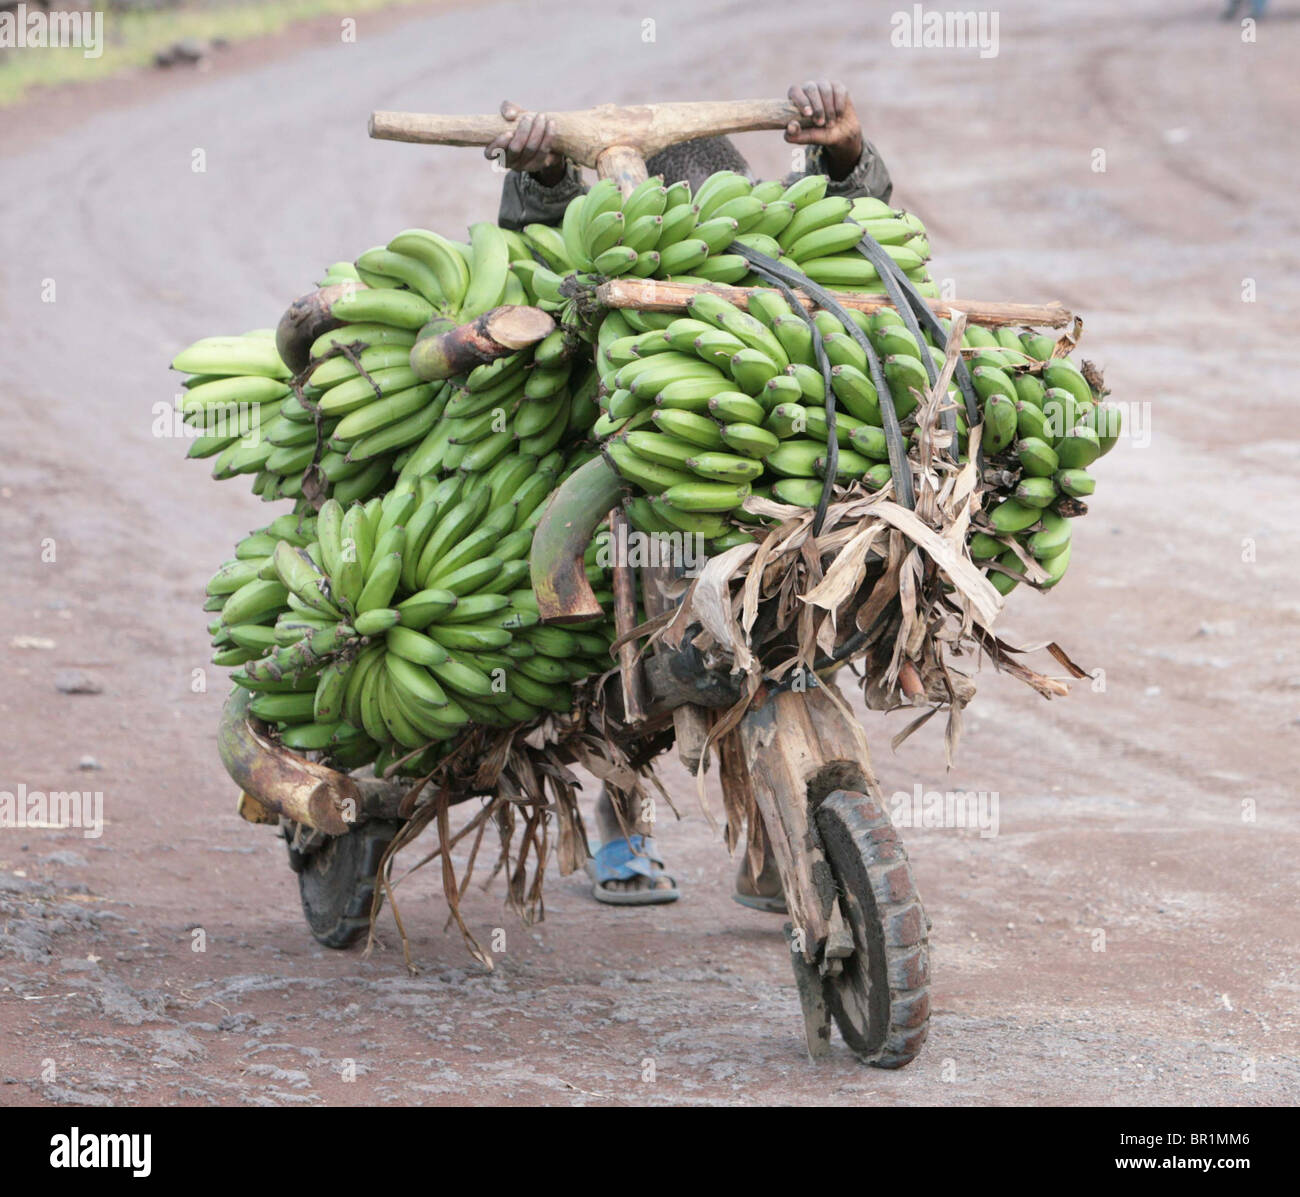 A boy pushes his load of bananas to market on the road outside Goma Congo - Stock Image